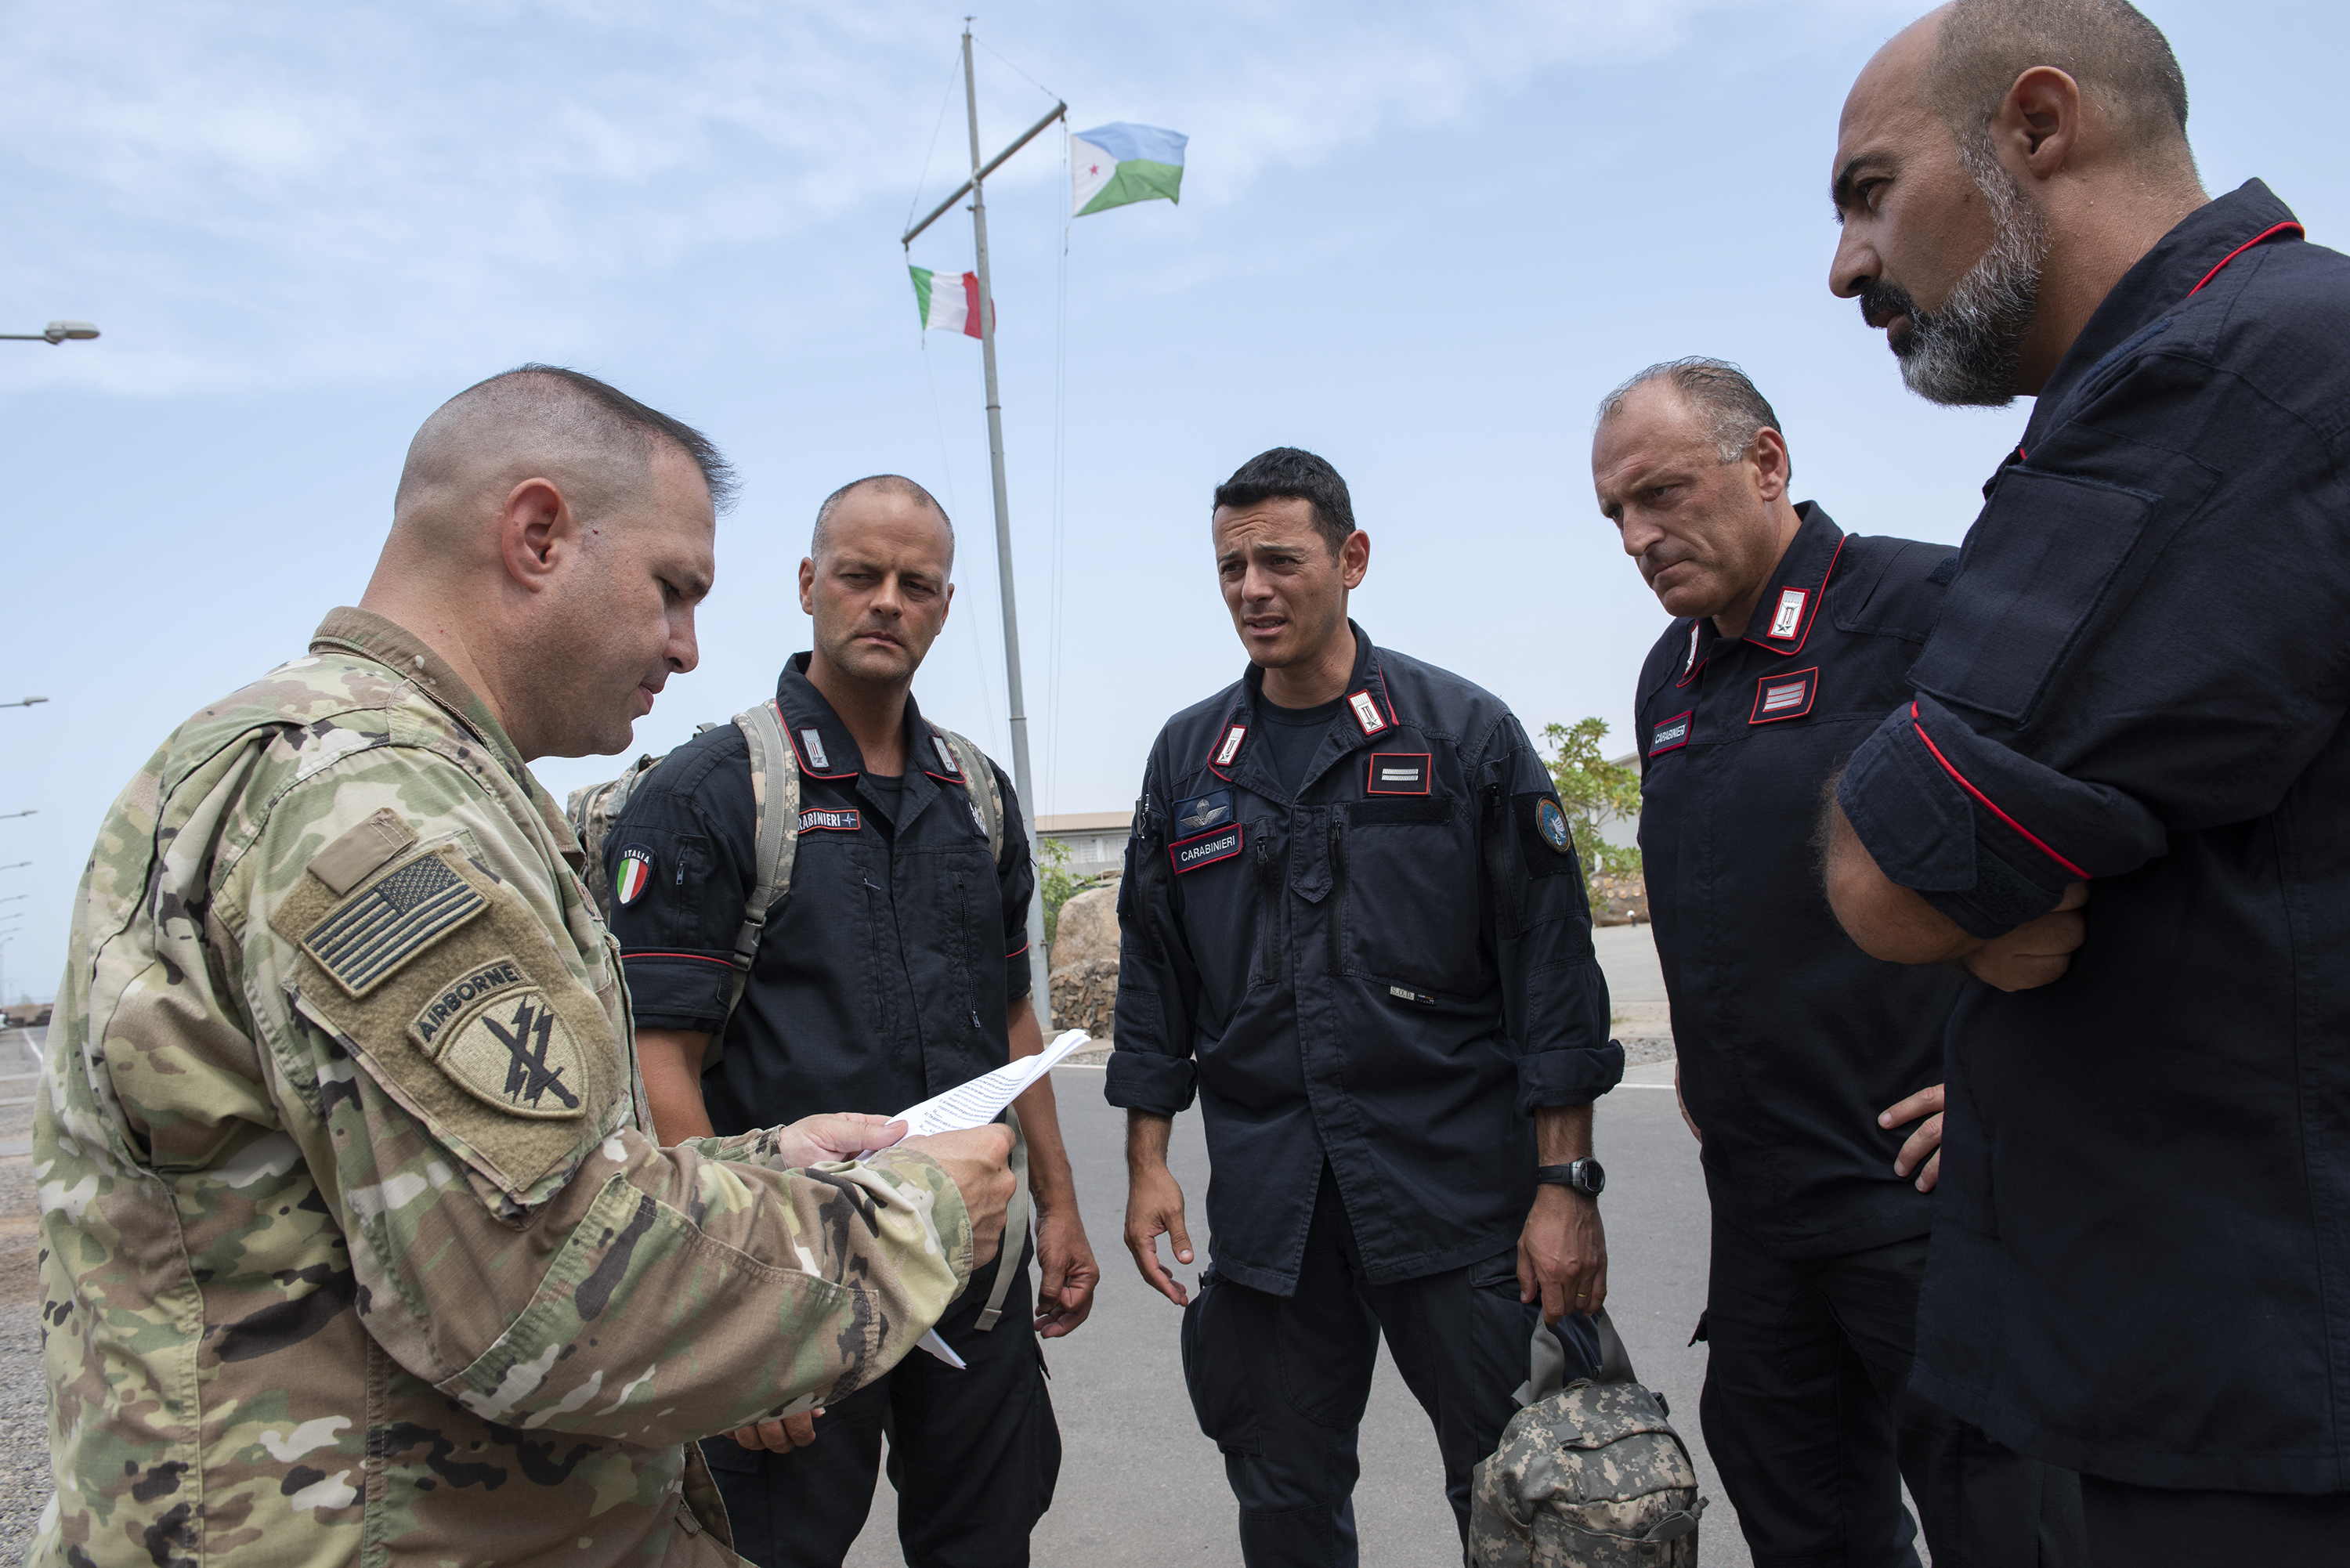 U.S. Army Staff Sgt. Richard Rye, a medic with the 404th Civil Affairs Battalion Functional Specialty Team, gives instructions to Italian soldiers with the 1st Paratroopers Carabinieri Regiment, Tuscania, during a Combat Lifesaver Course on Base Militar Italiano de Supporte, Djibouti, April 28, 2018. The medics were overseeing the combat lifesaver lanes, which are the final task for the students prior to completion of the course. (U.S. Air National Guard photo by Master Sgt. Sarah Mattison)